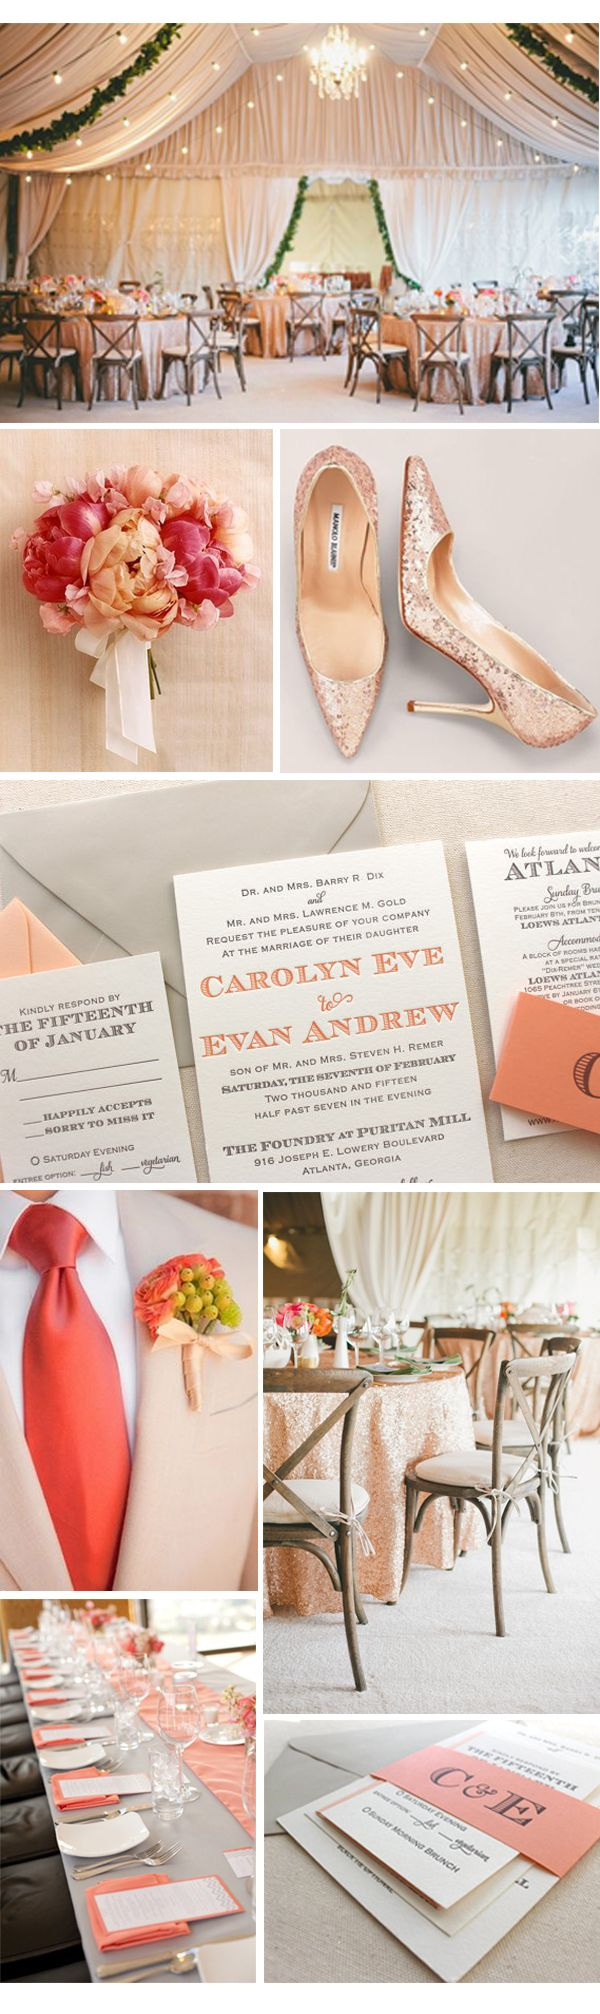 Laurel suite whimsical modern letterpress wedding invitation - coral, grey, bold, modern, pink, fuchsia, blush, peach, orange, glitter, gold, tan, glamour, chandelier, rustic, color trends, chic, beach, stunning.